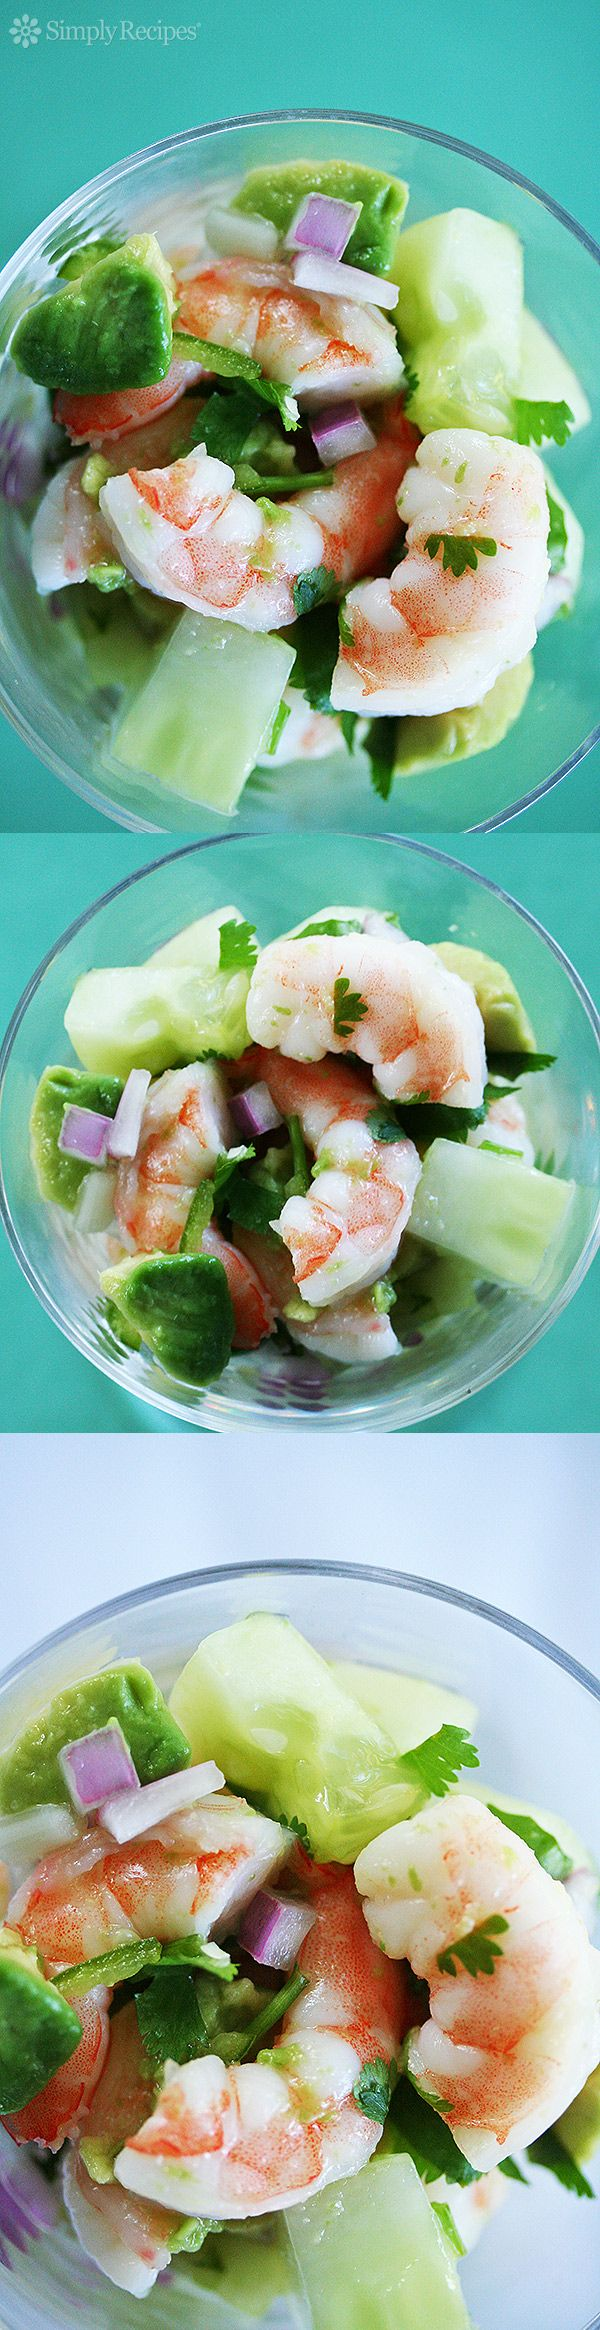 EASY Shrimp Ceviche! Cool and tasty shrimp ceviche, with shrimp and chopped red onion, chile, cilantro, cucumber, avocado, lemon and lime juices. On SimplyRecipes.com